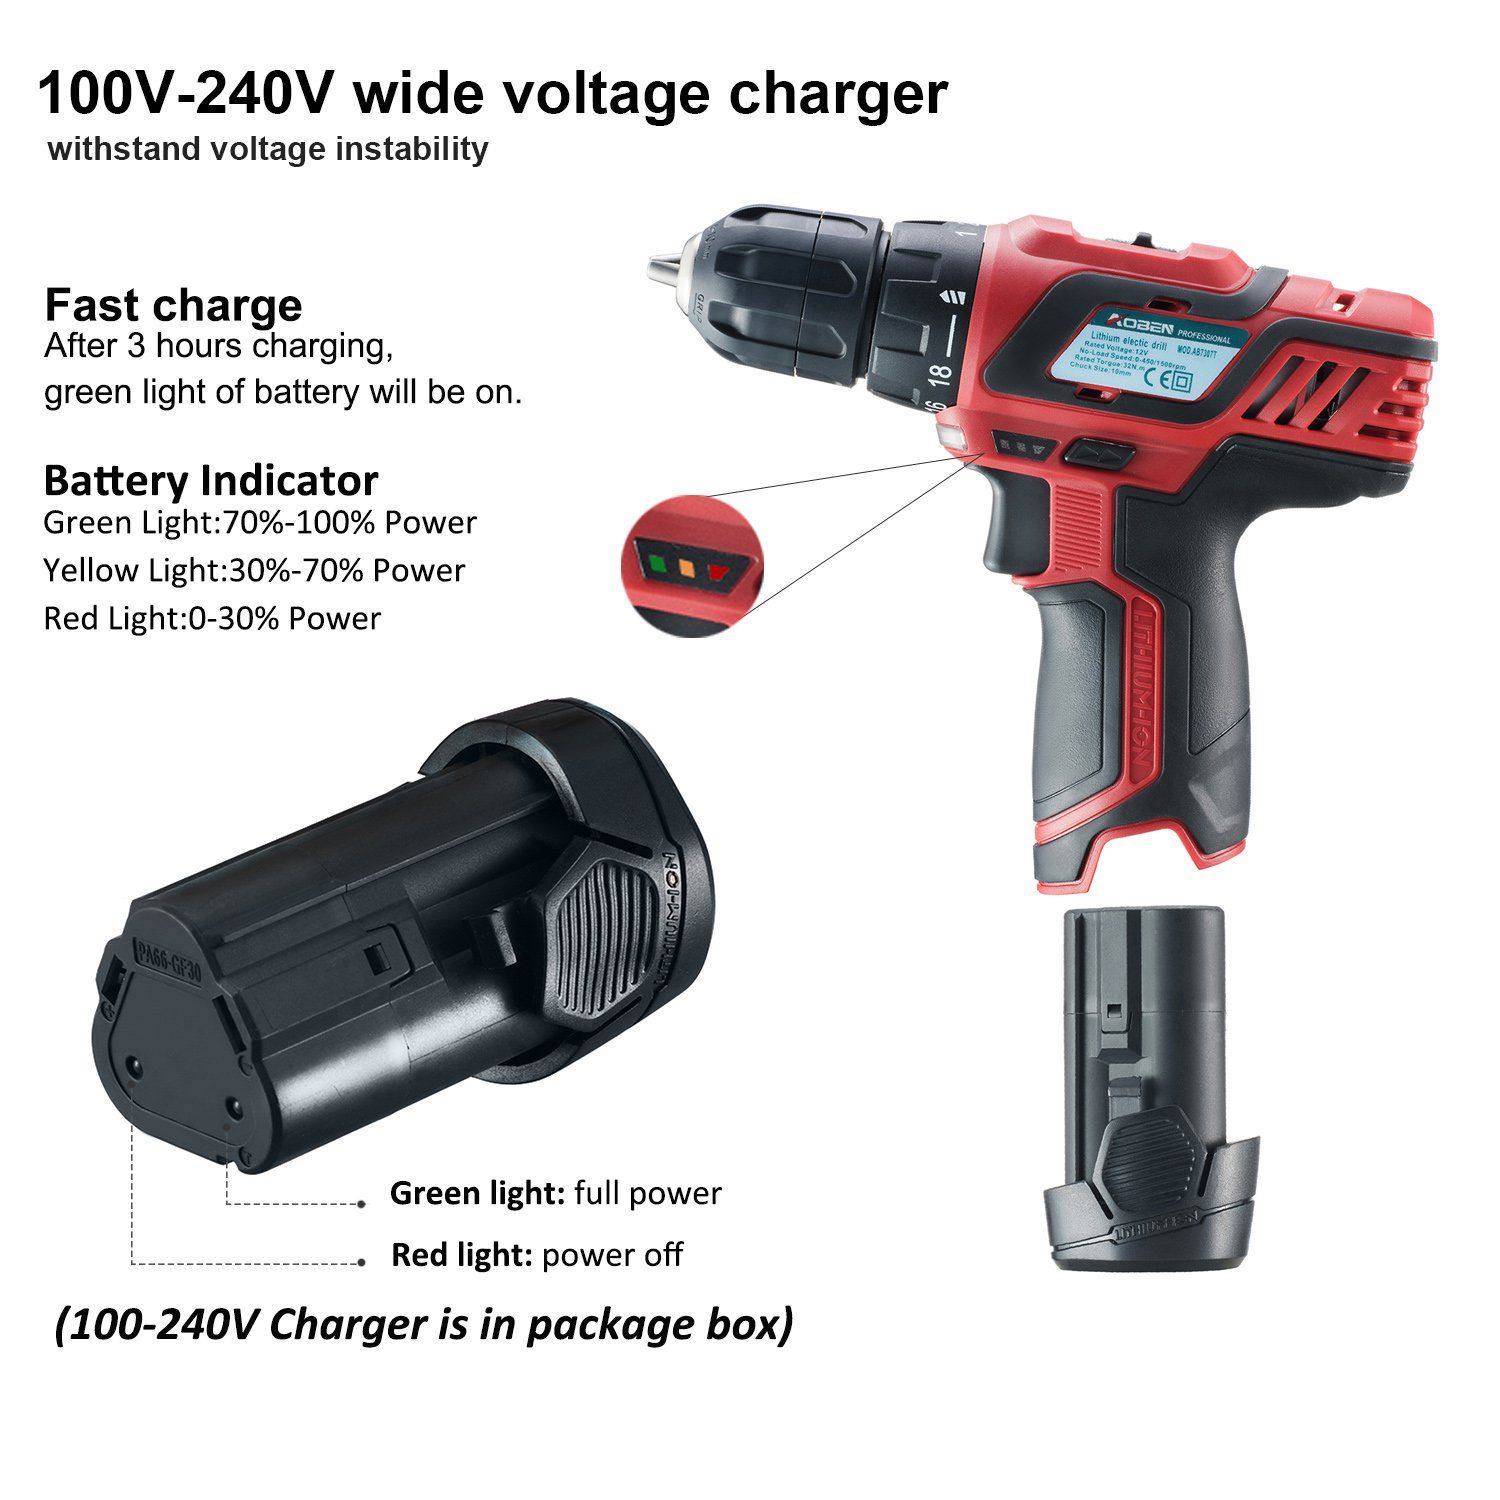 Aoben 12v Max Cordless 3 8inch Drill Driver Kit Ab7307t 2speed Lightweight With 2 Lithiumion Batteries Charger Drill Set For Men Wome Women Diy Drill Set Drill